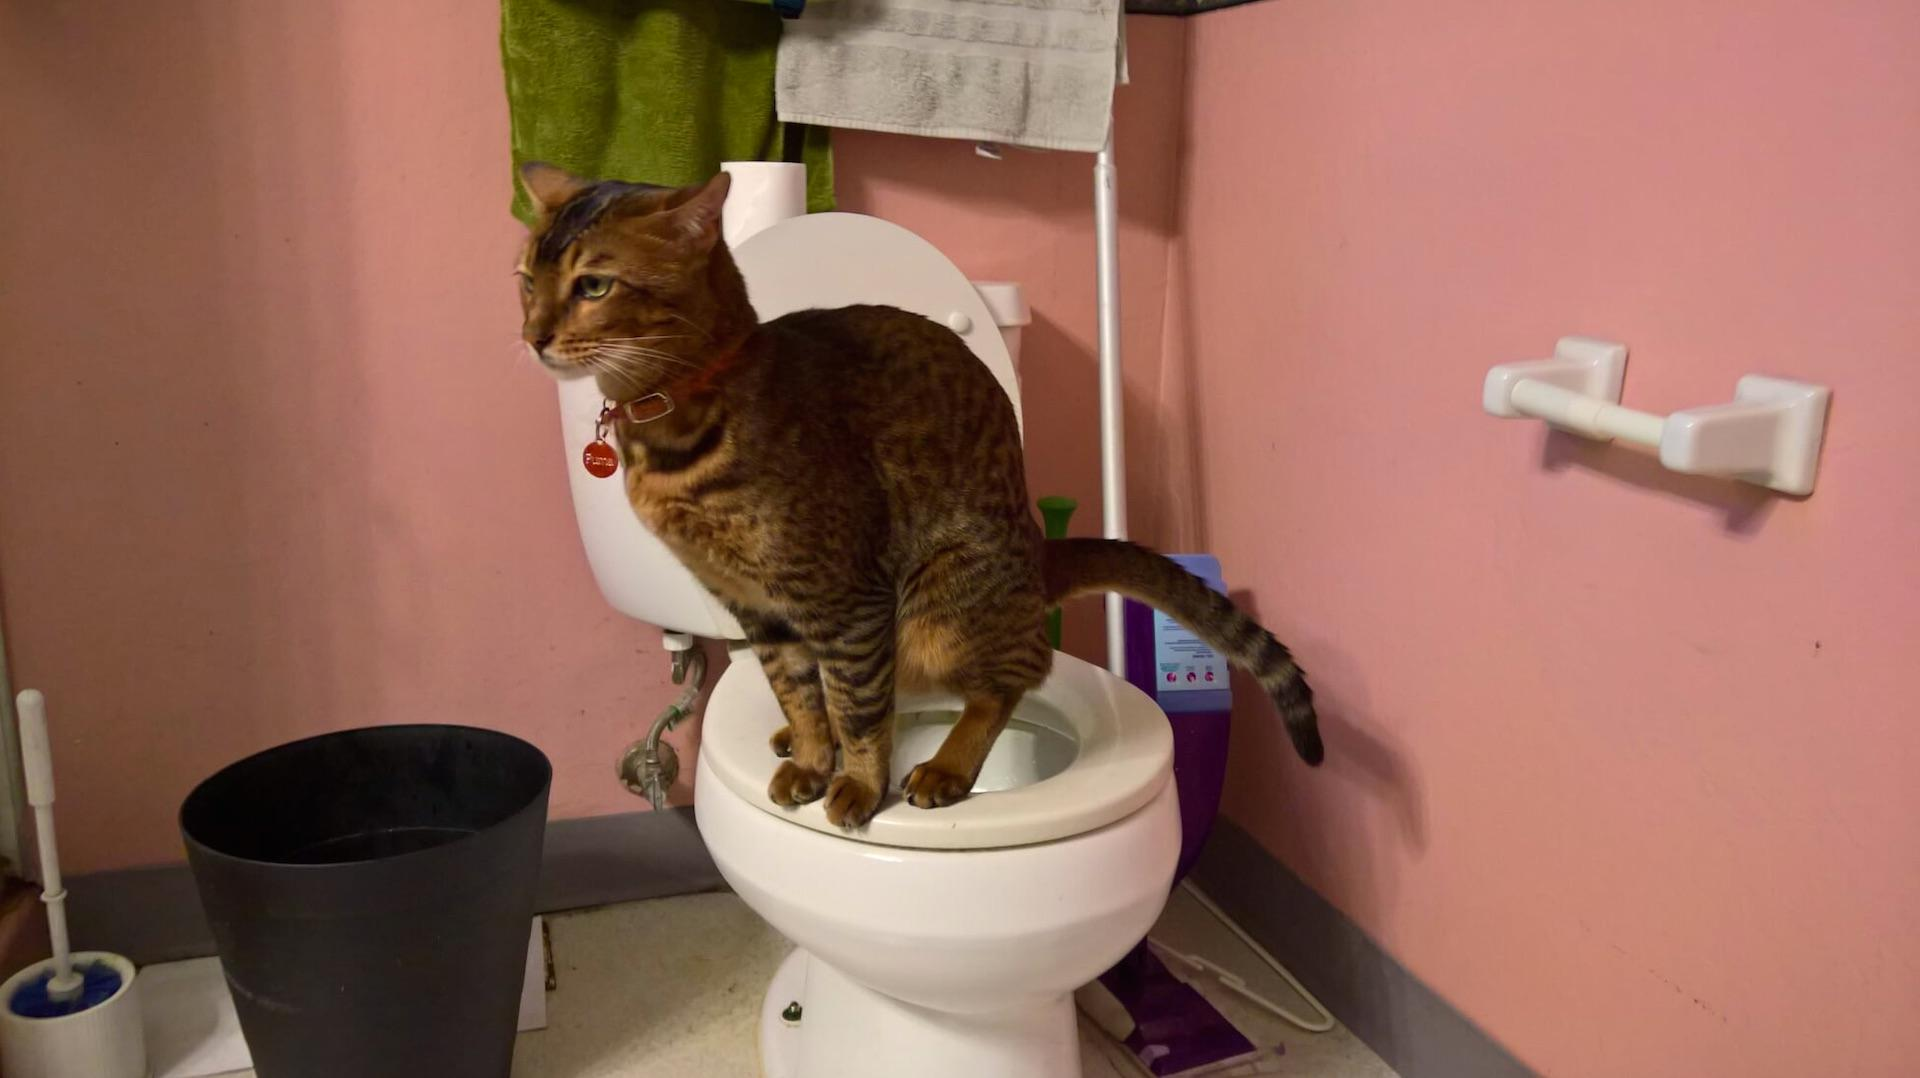 How Can You Teach Your Cat To Use The Toilet